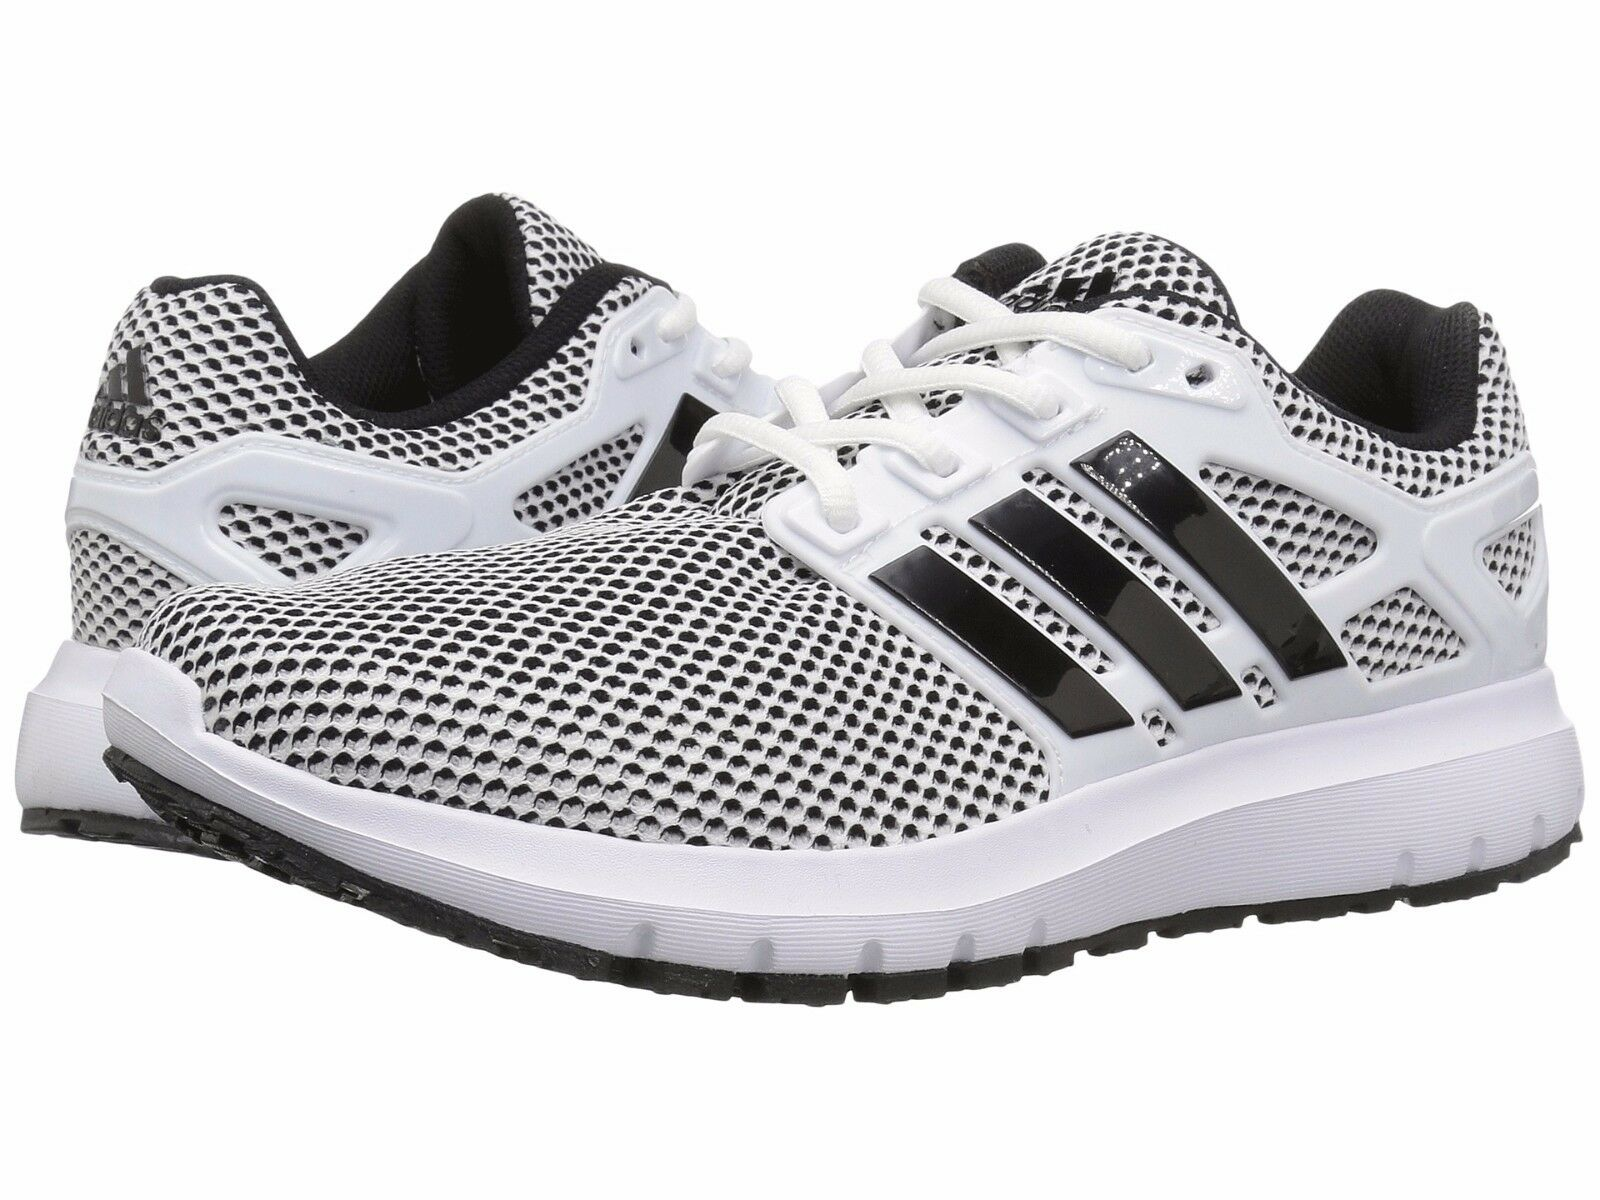 adidas ENERGY CLOUD Mens White/Black CG3007 Lace Up Running Shoes